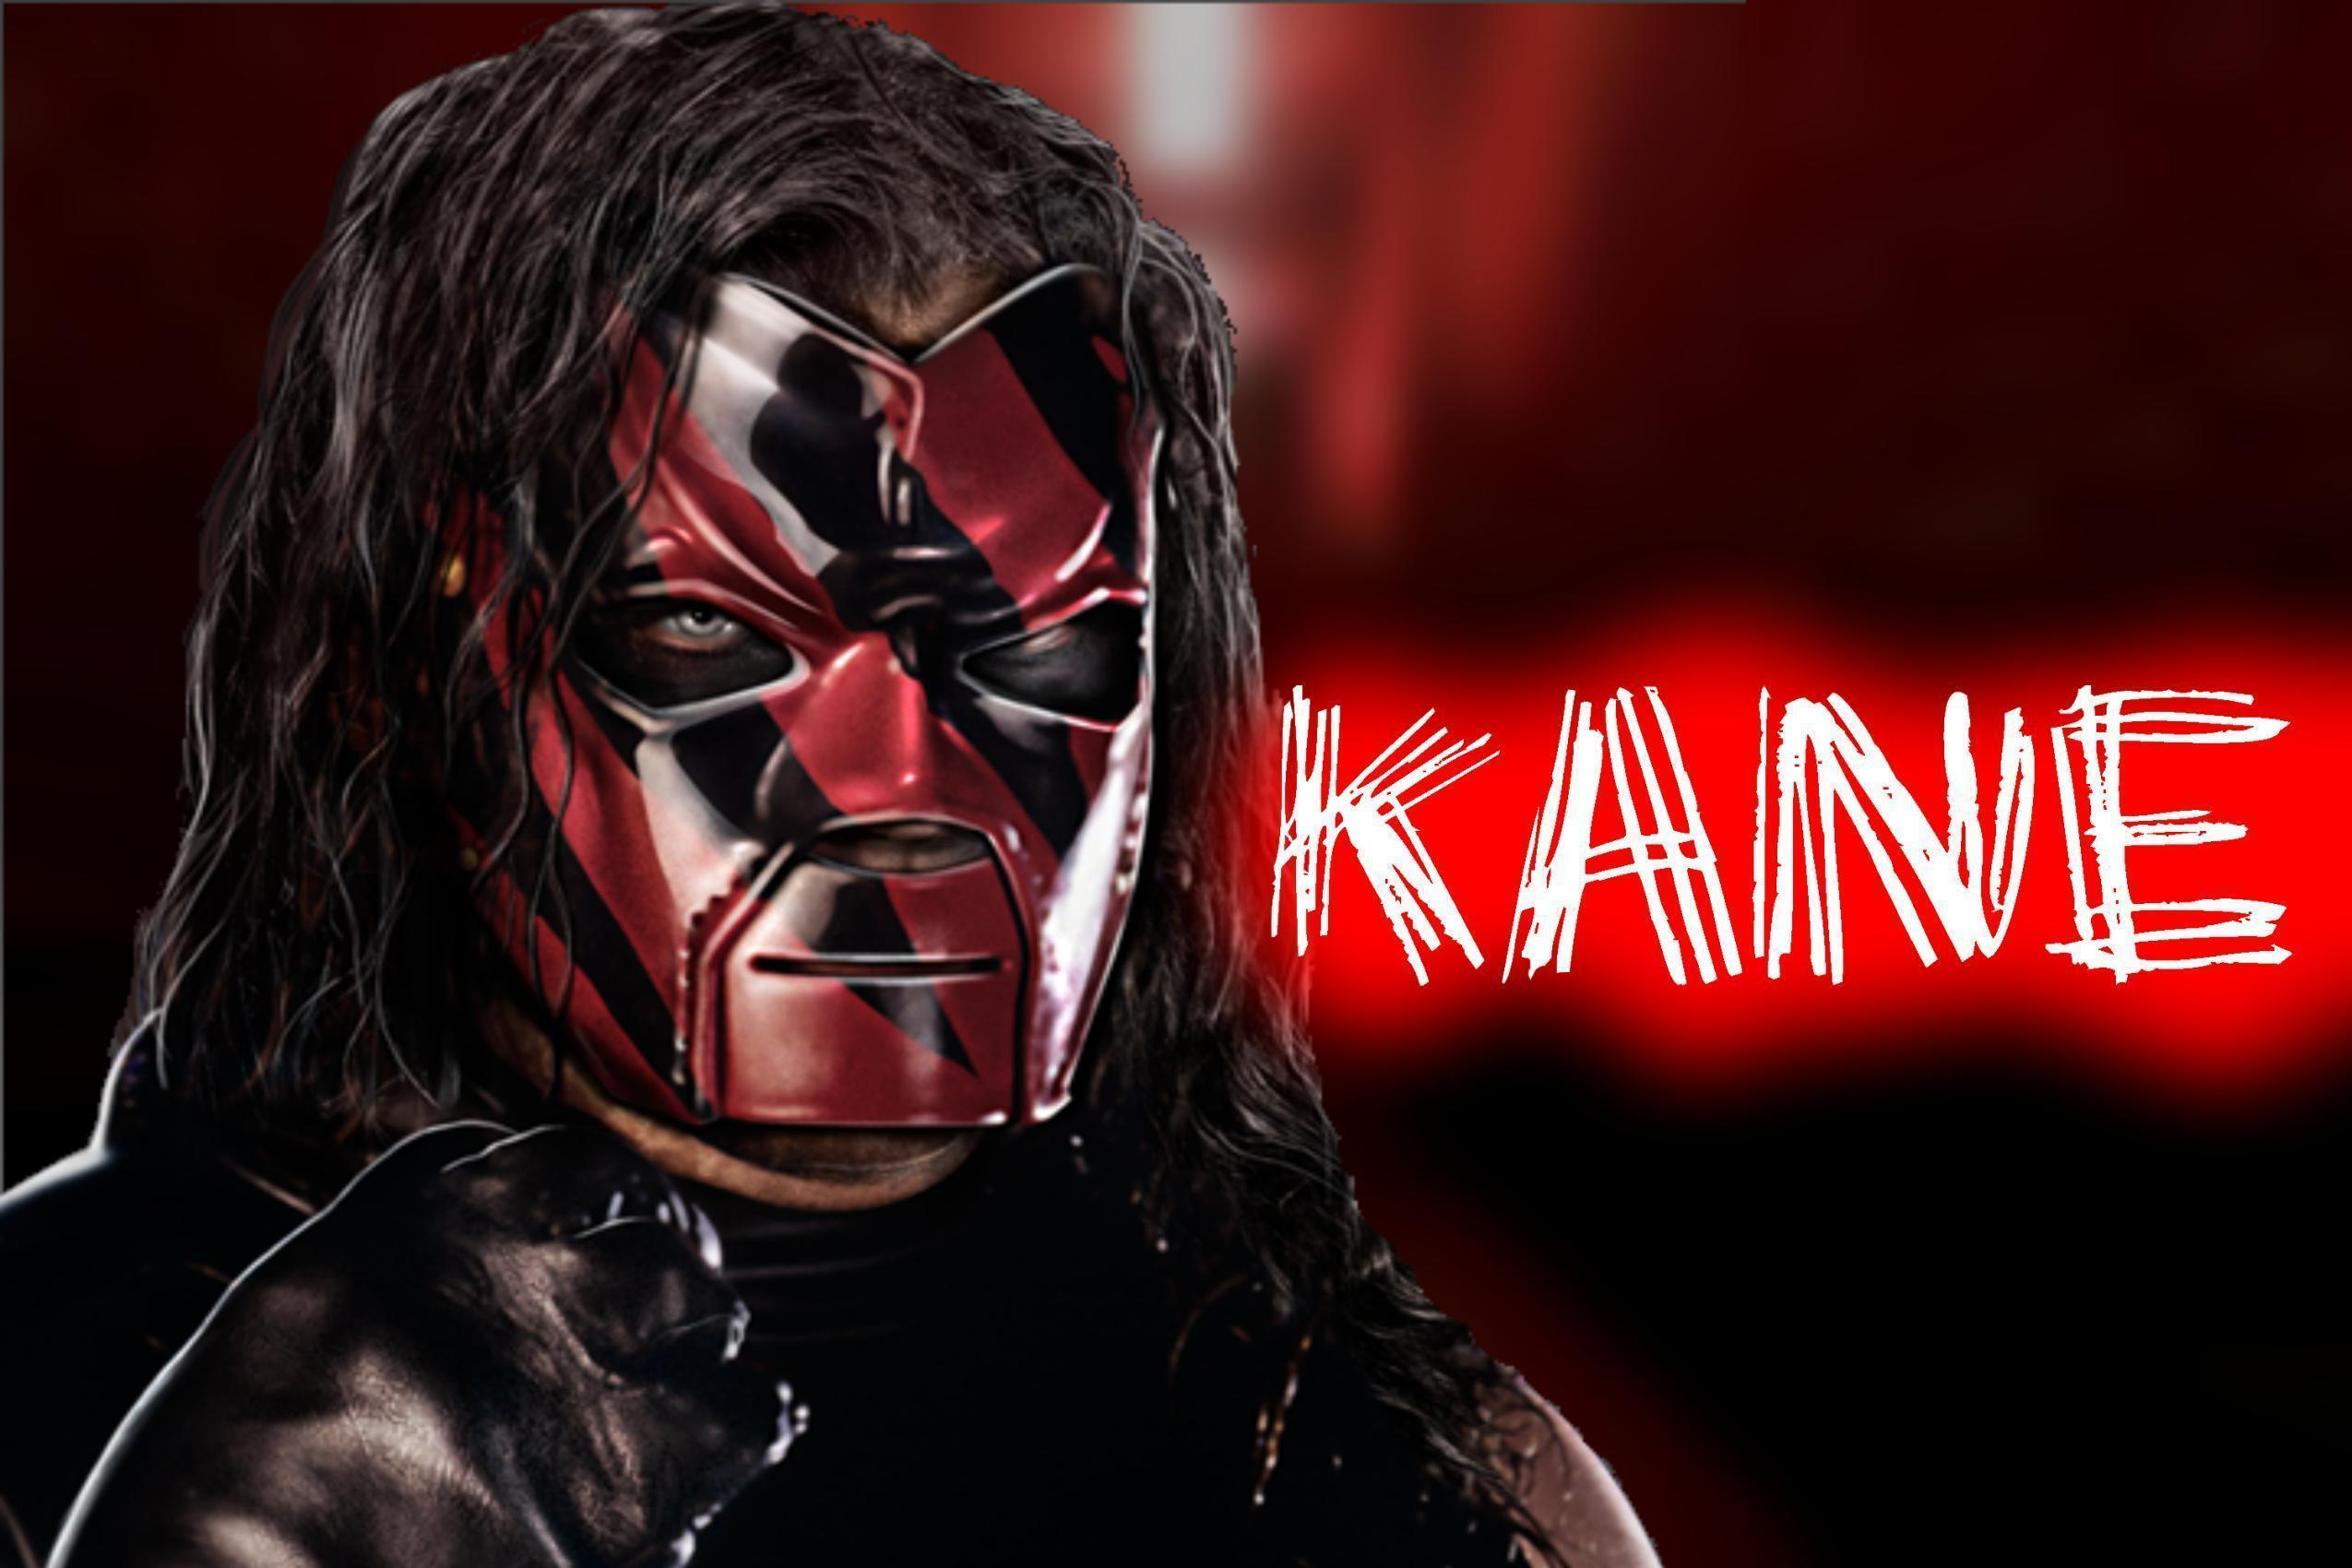 wwe the kane 2015 wallpapers wallpaper cave